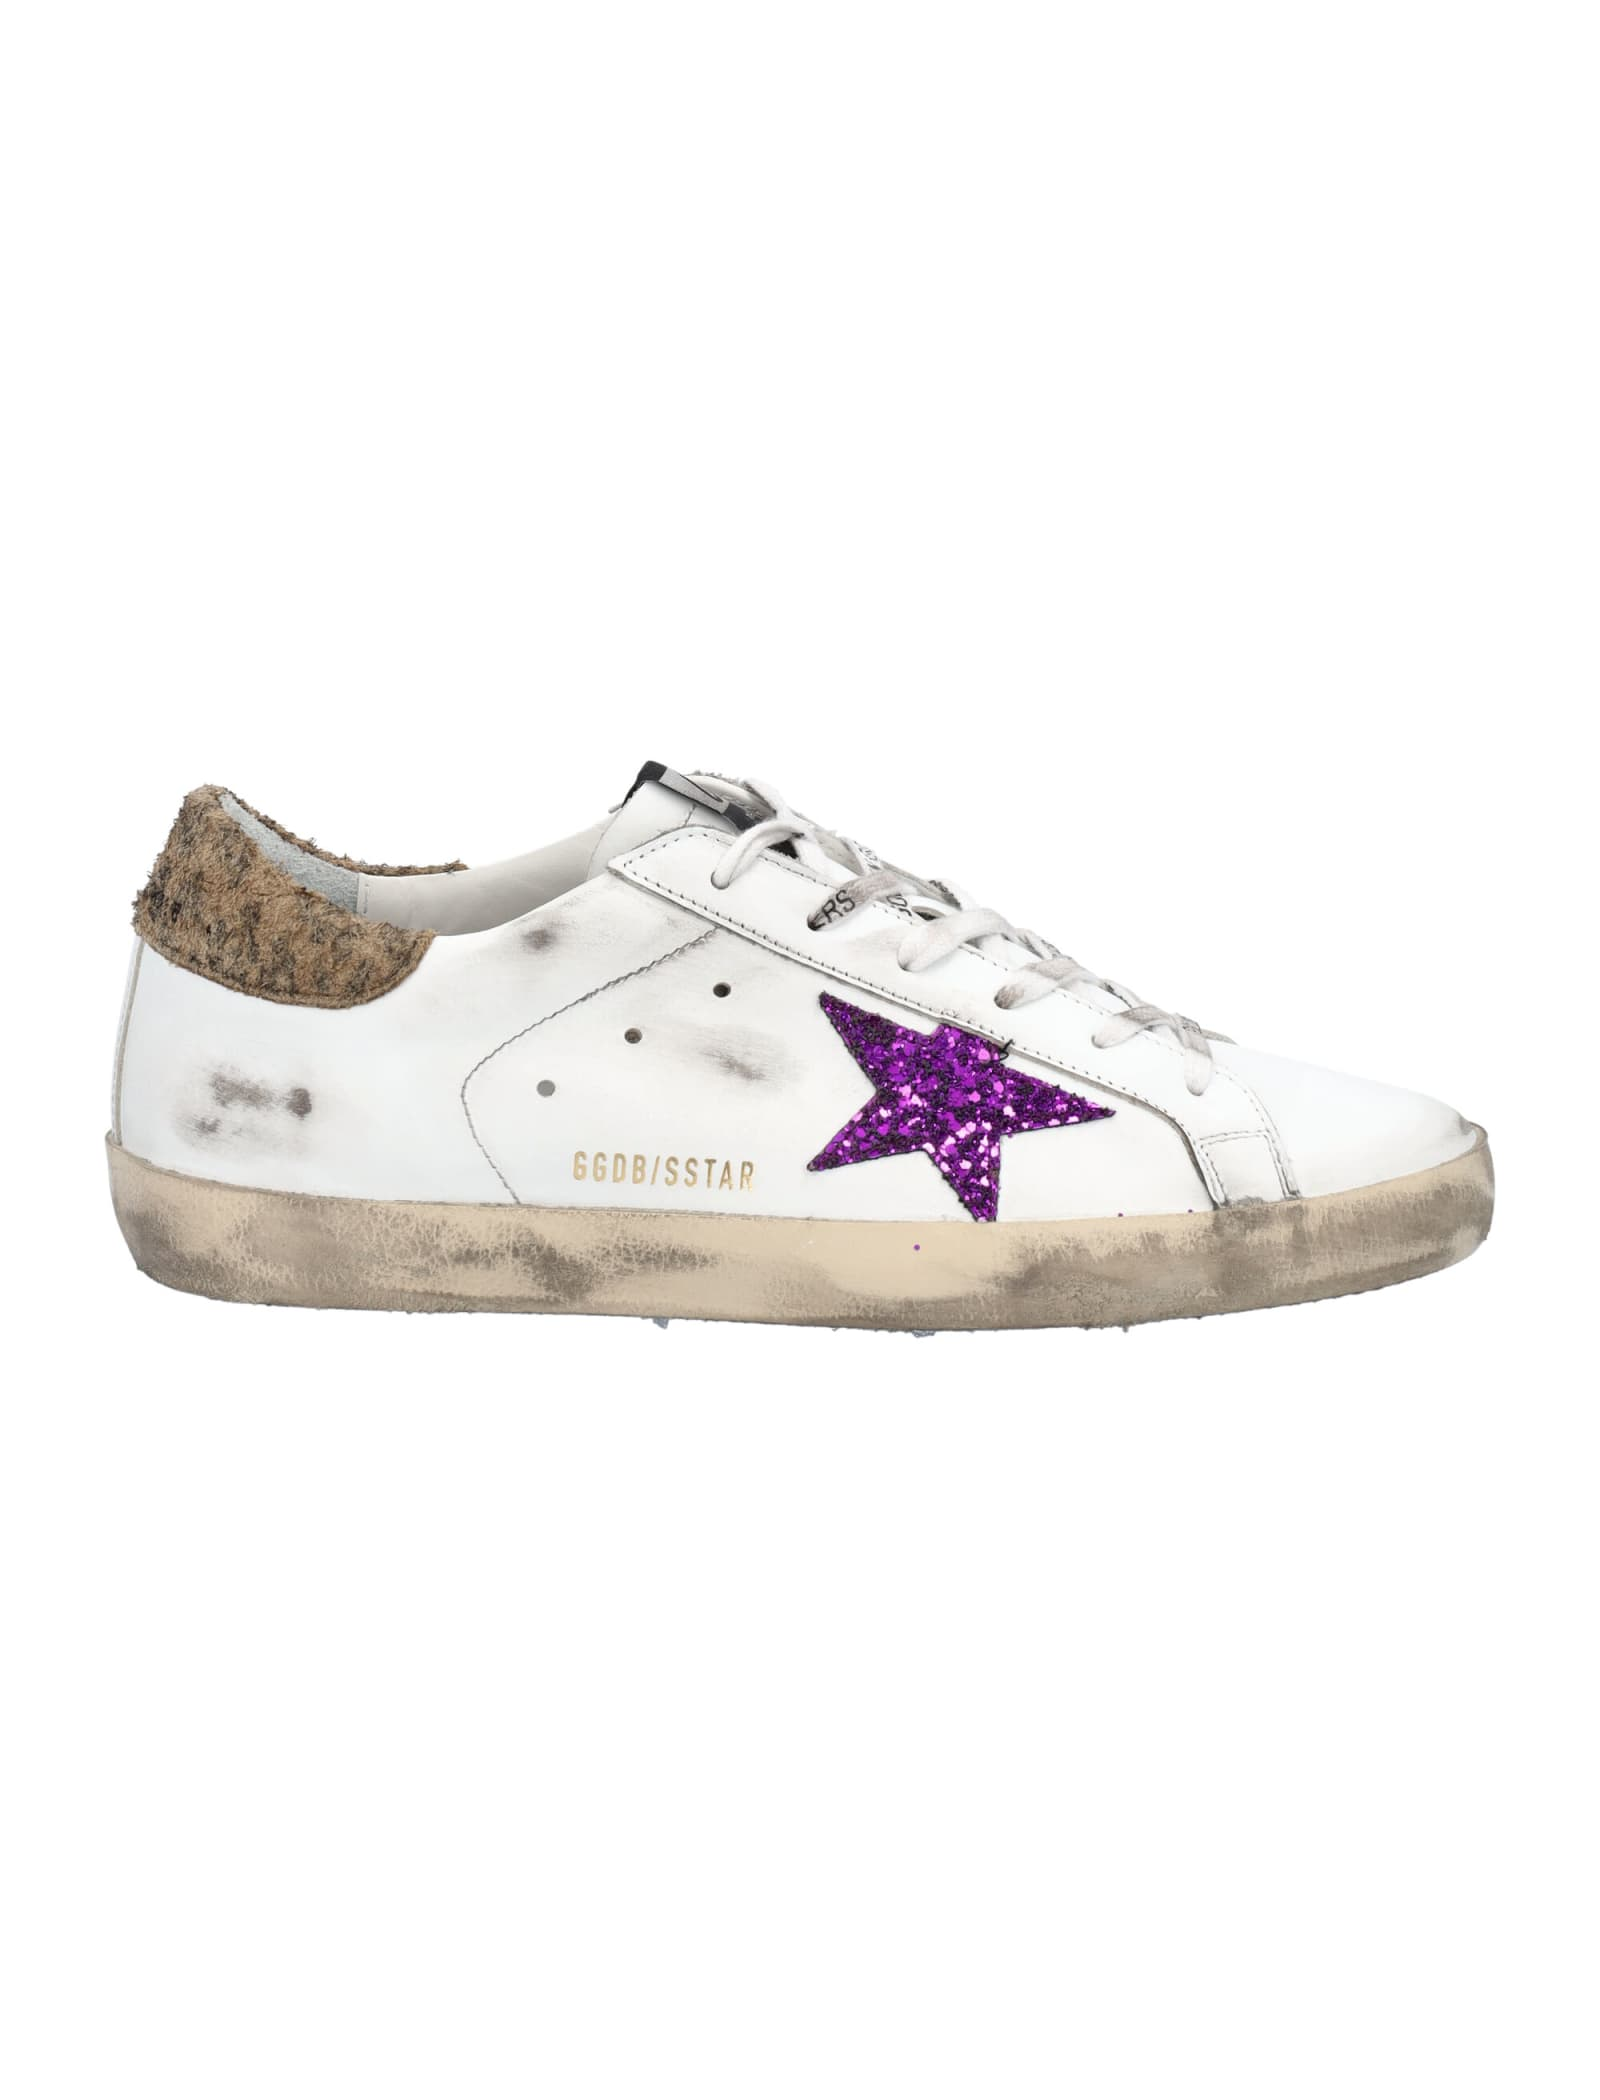 Golden Goose Super-star Sneakers In White Leather With Lavender-colored Glitter Star